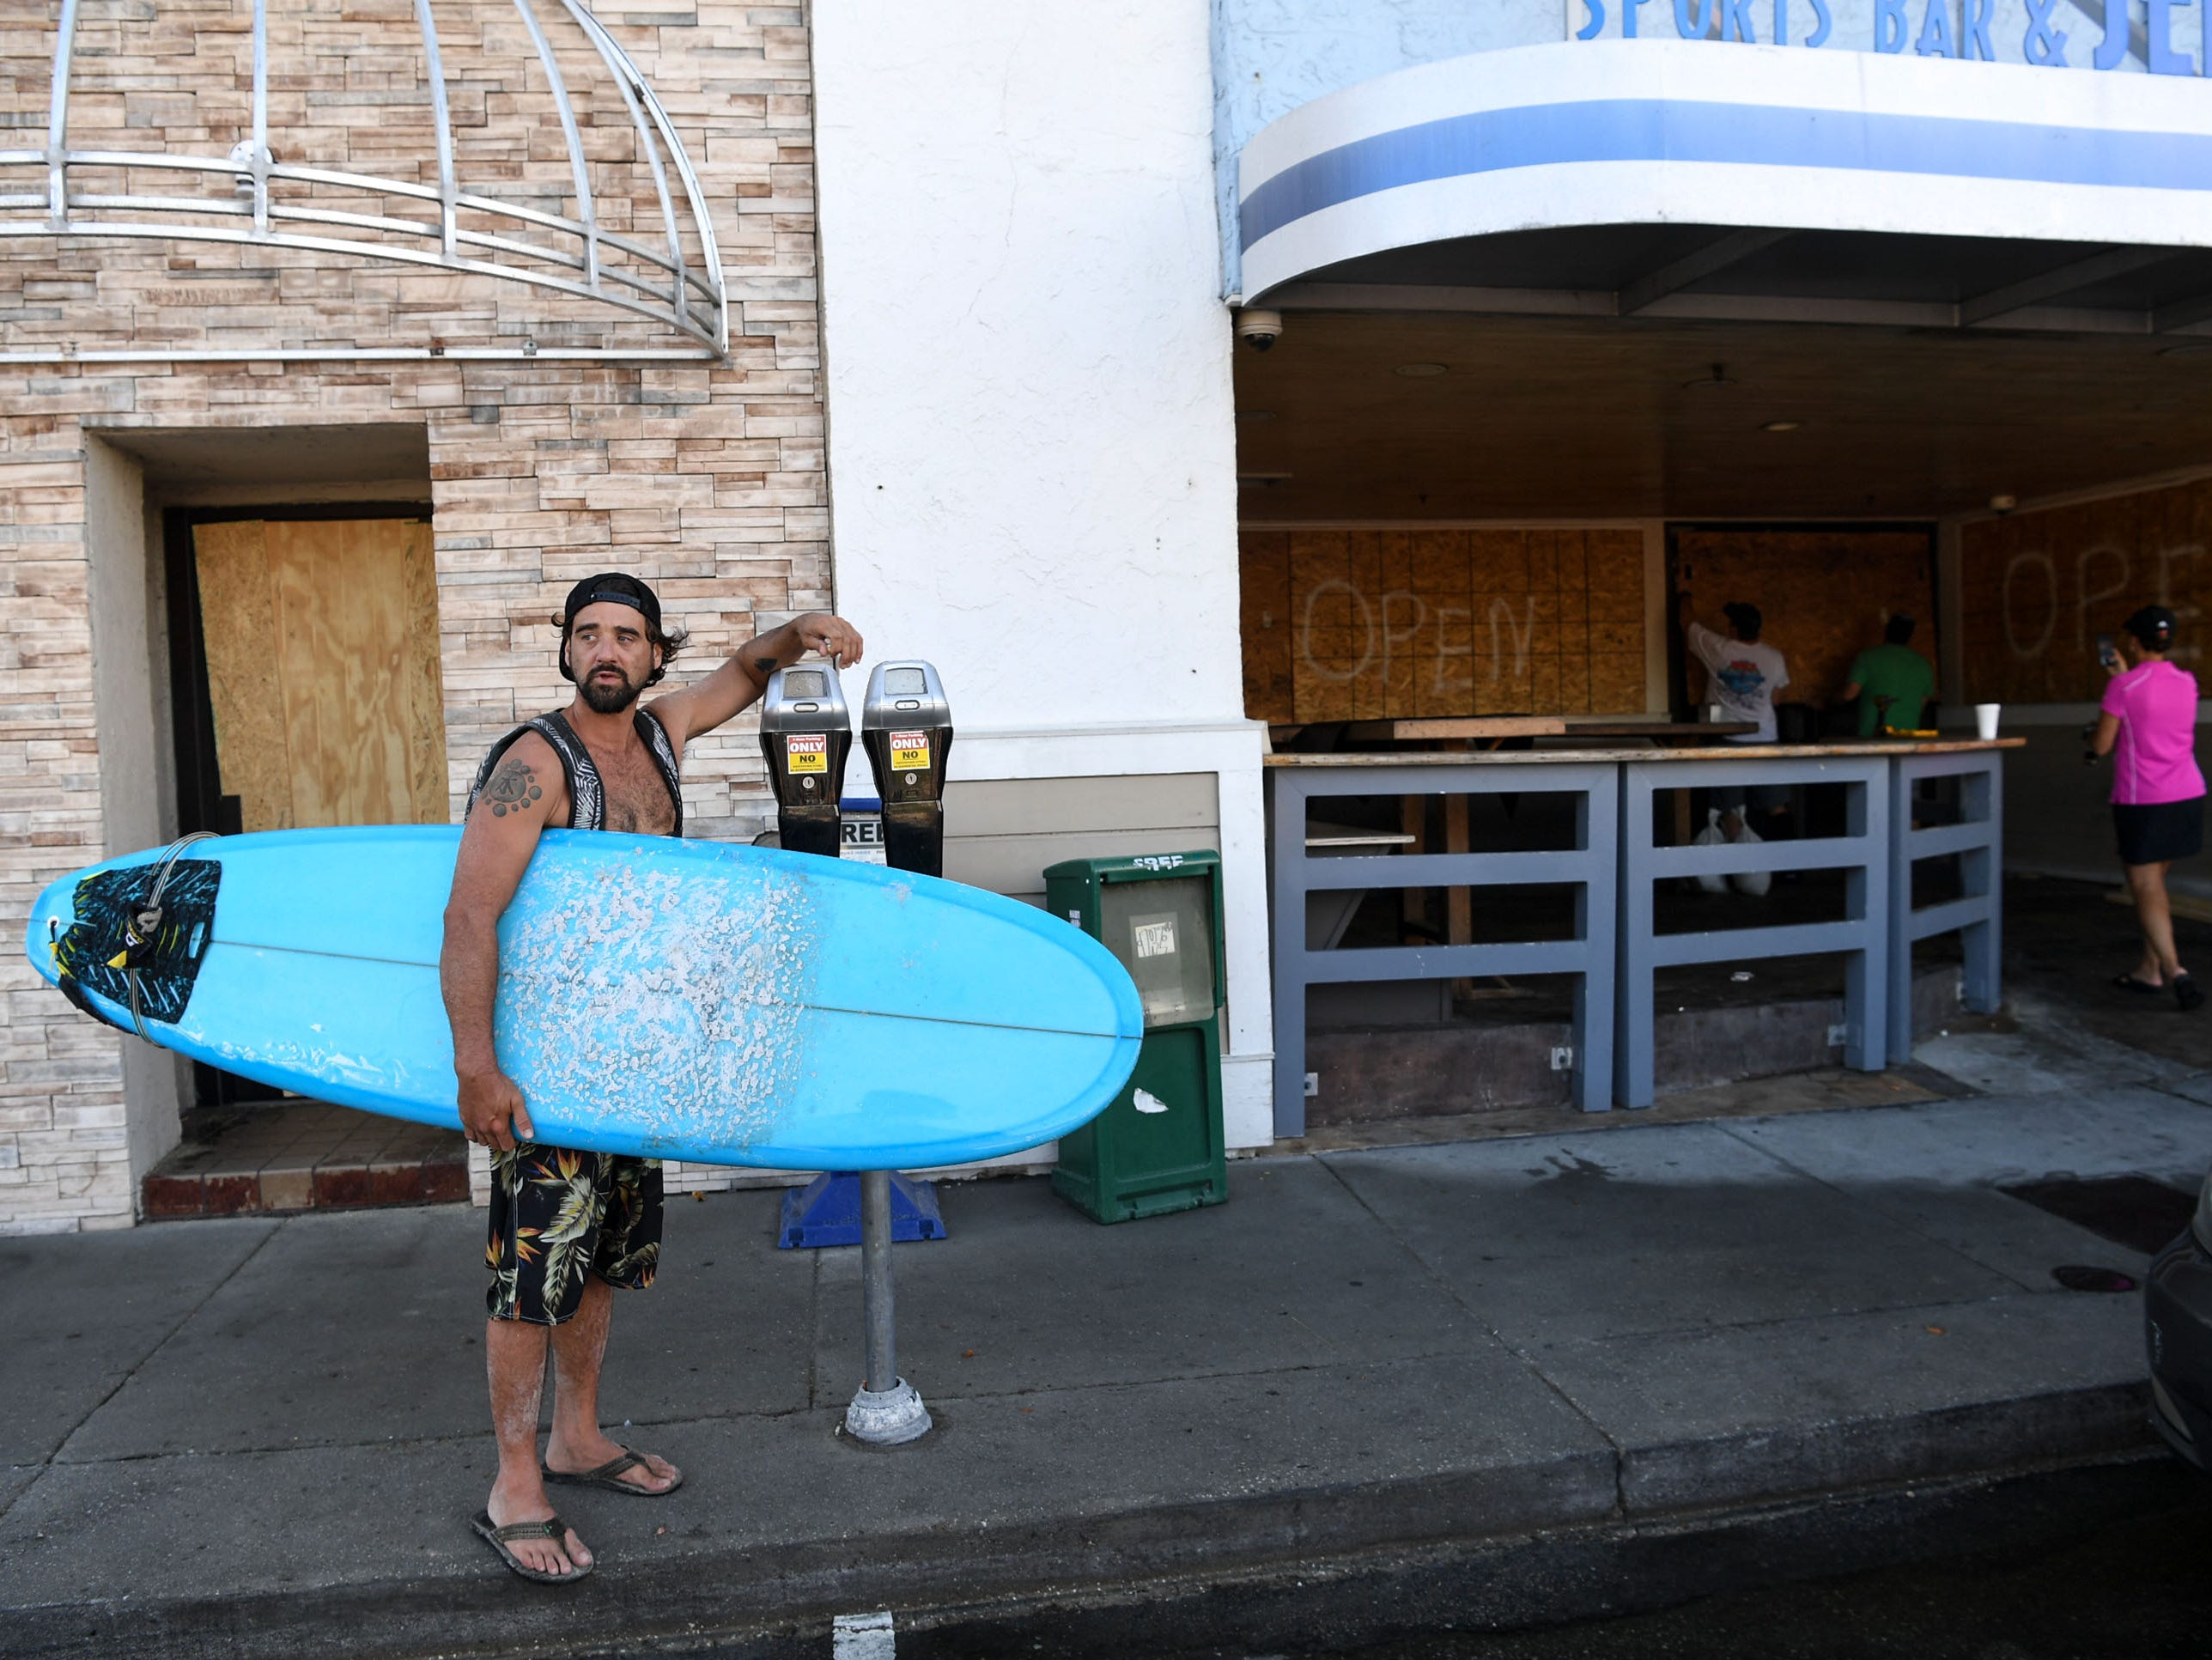 James Waters of Wilmington finished surfing and stopped by to see his friends boarding up Jerry Allen's Grill at Wrigtsville Beach in Wilmington, North Carolina on Wednesday, September 12, 2018.  (Ken Ruinard / Greenville News / Gannett USA Today Network / 2018 )